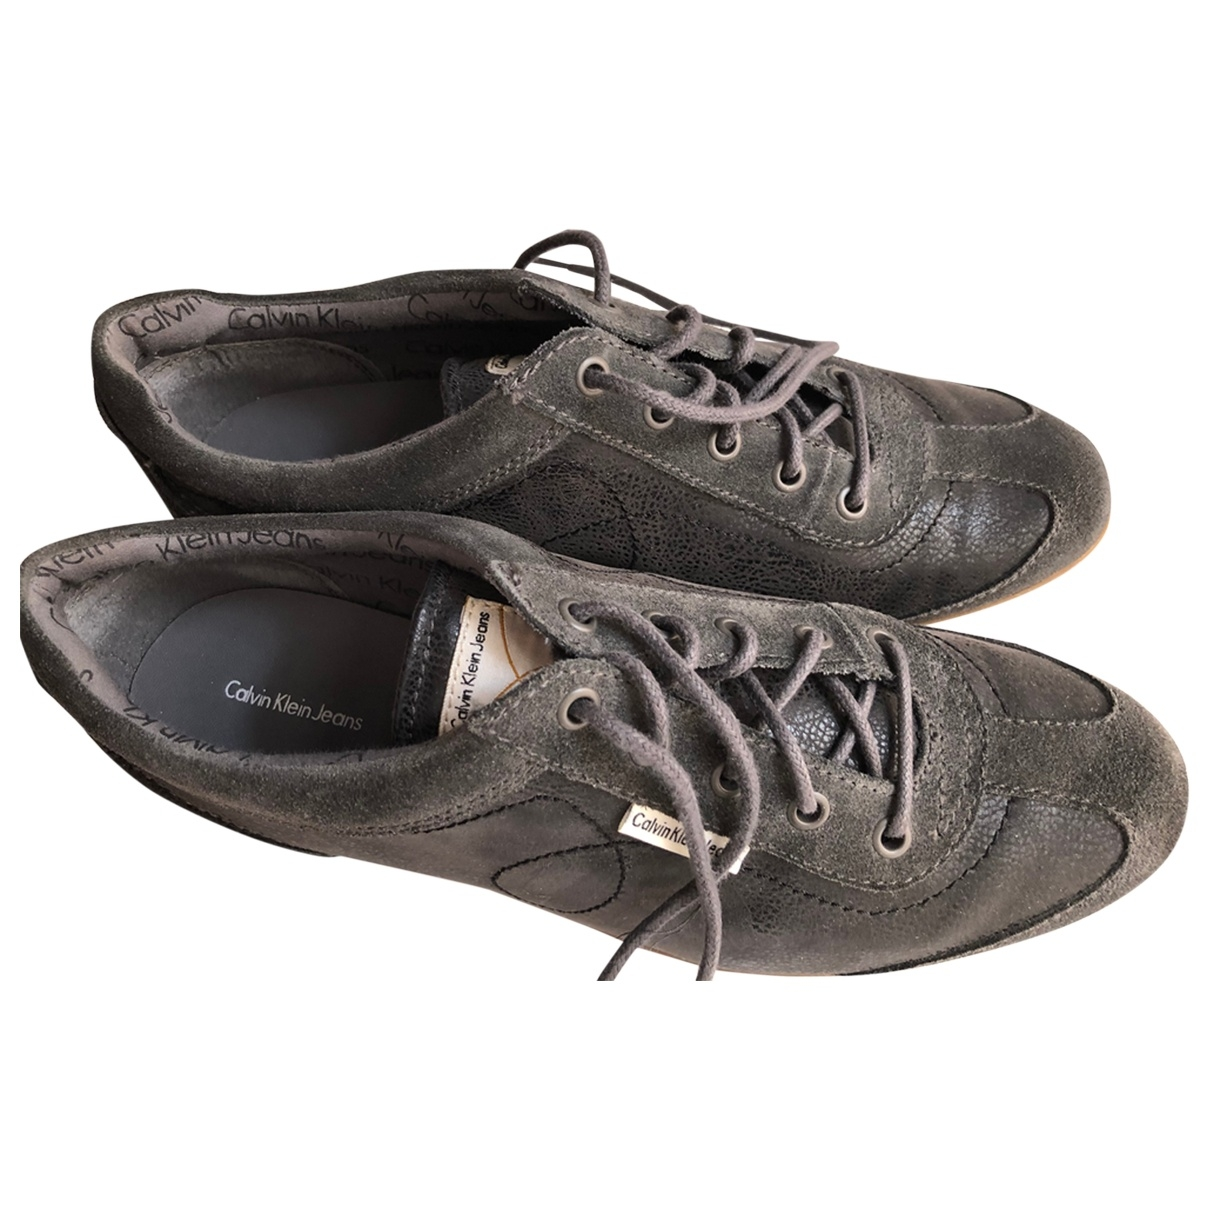 Calvin Klein \N Grey Leather Trainers for Women 41 EU